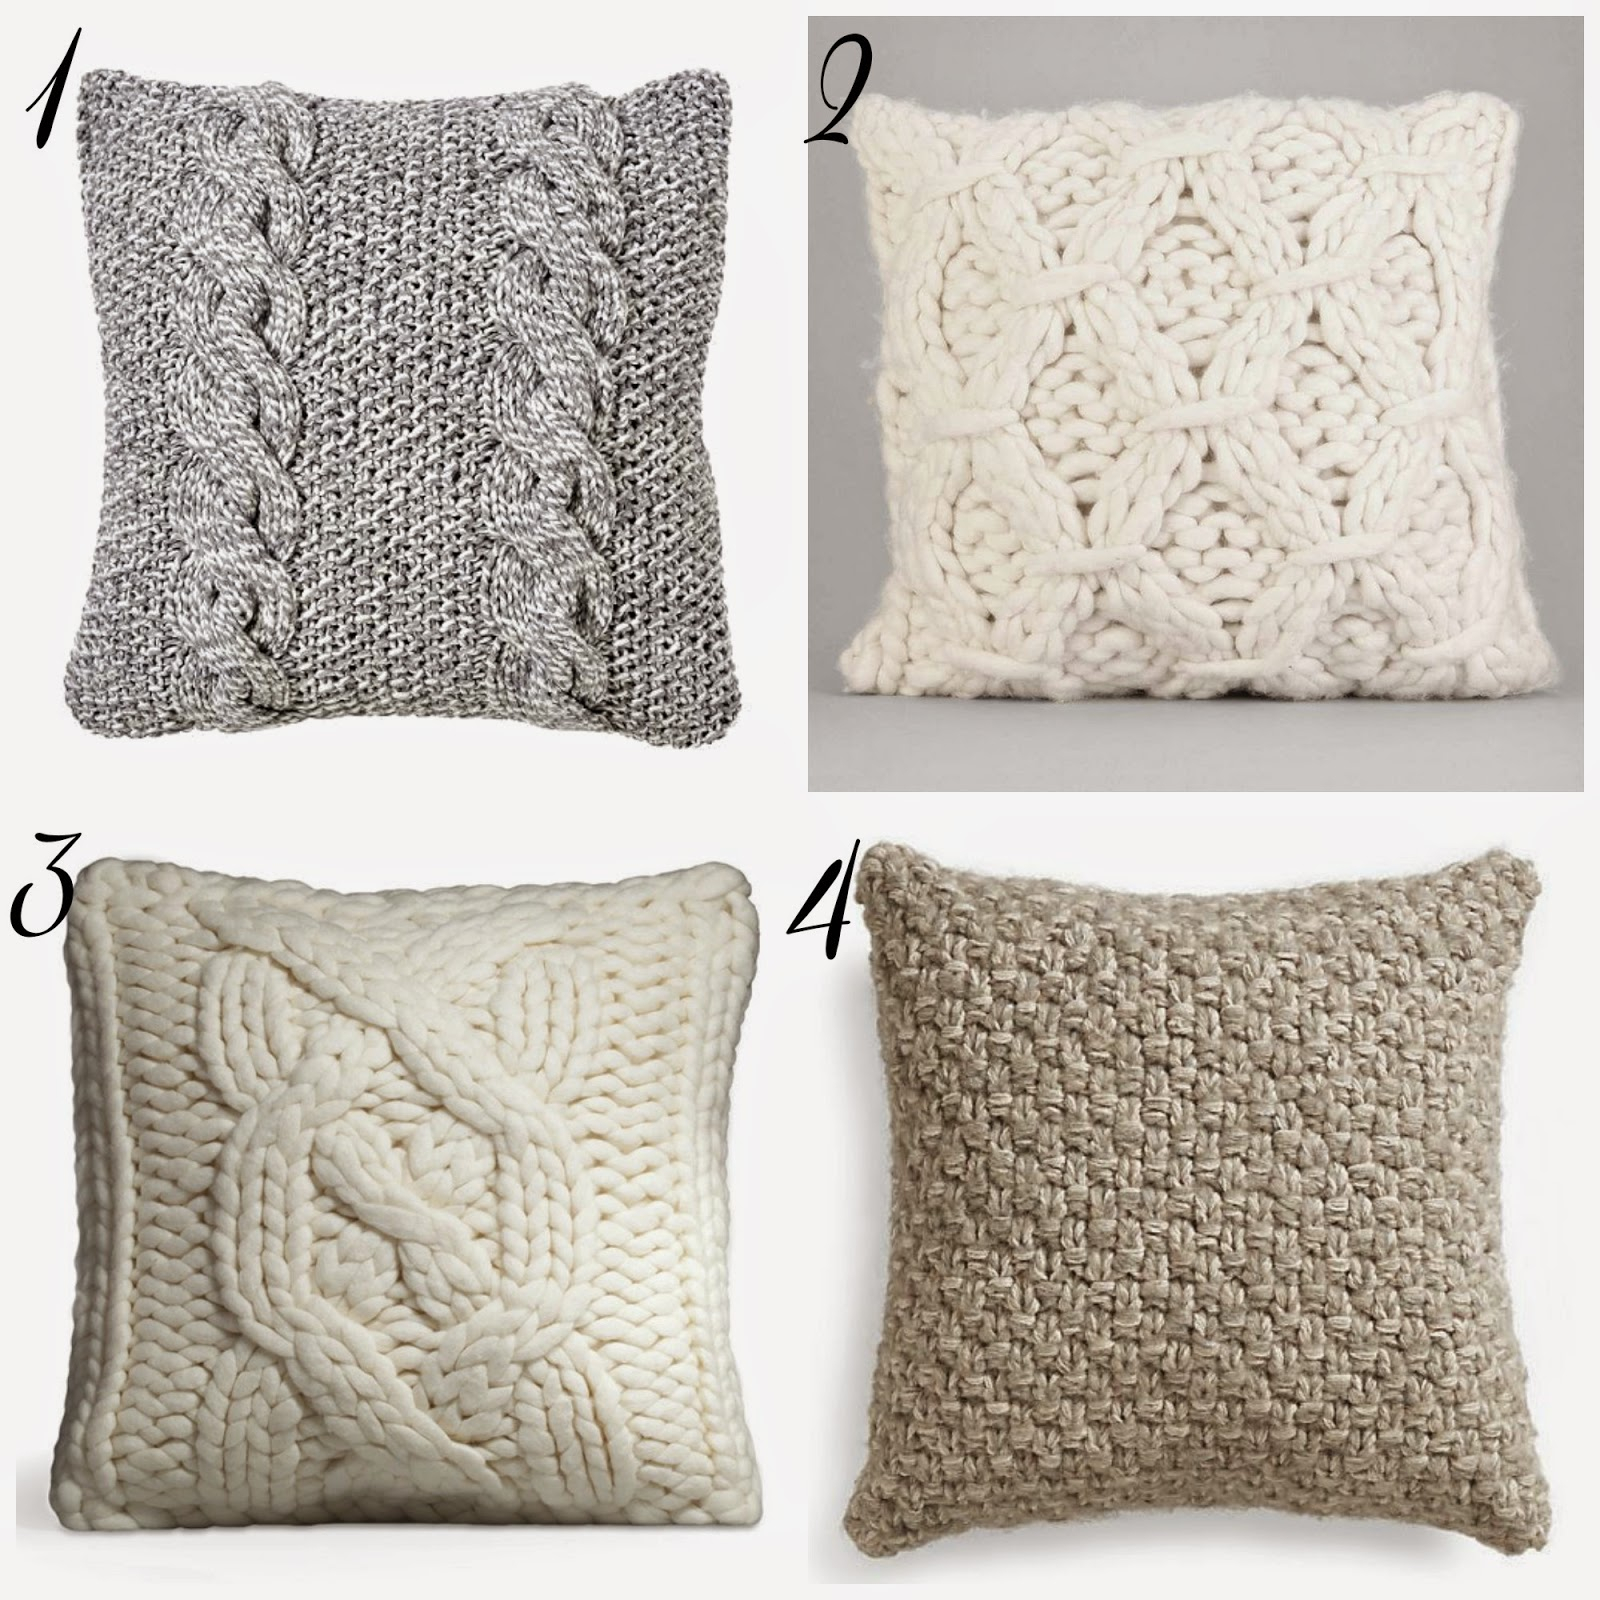 Knitting Pattern For Cushion Cover With Cables Cable Knit Throw Pillow Pattern Photos Table And Pillow